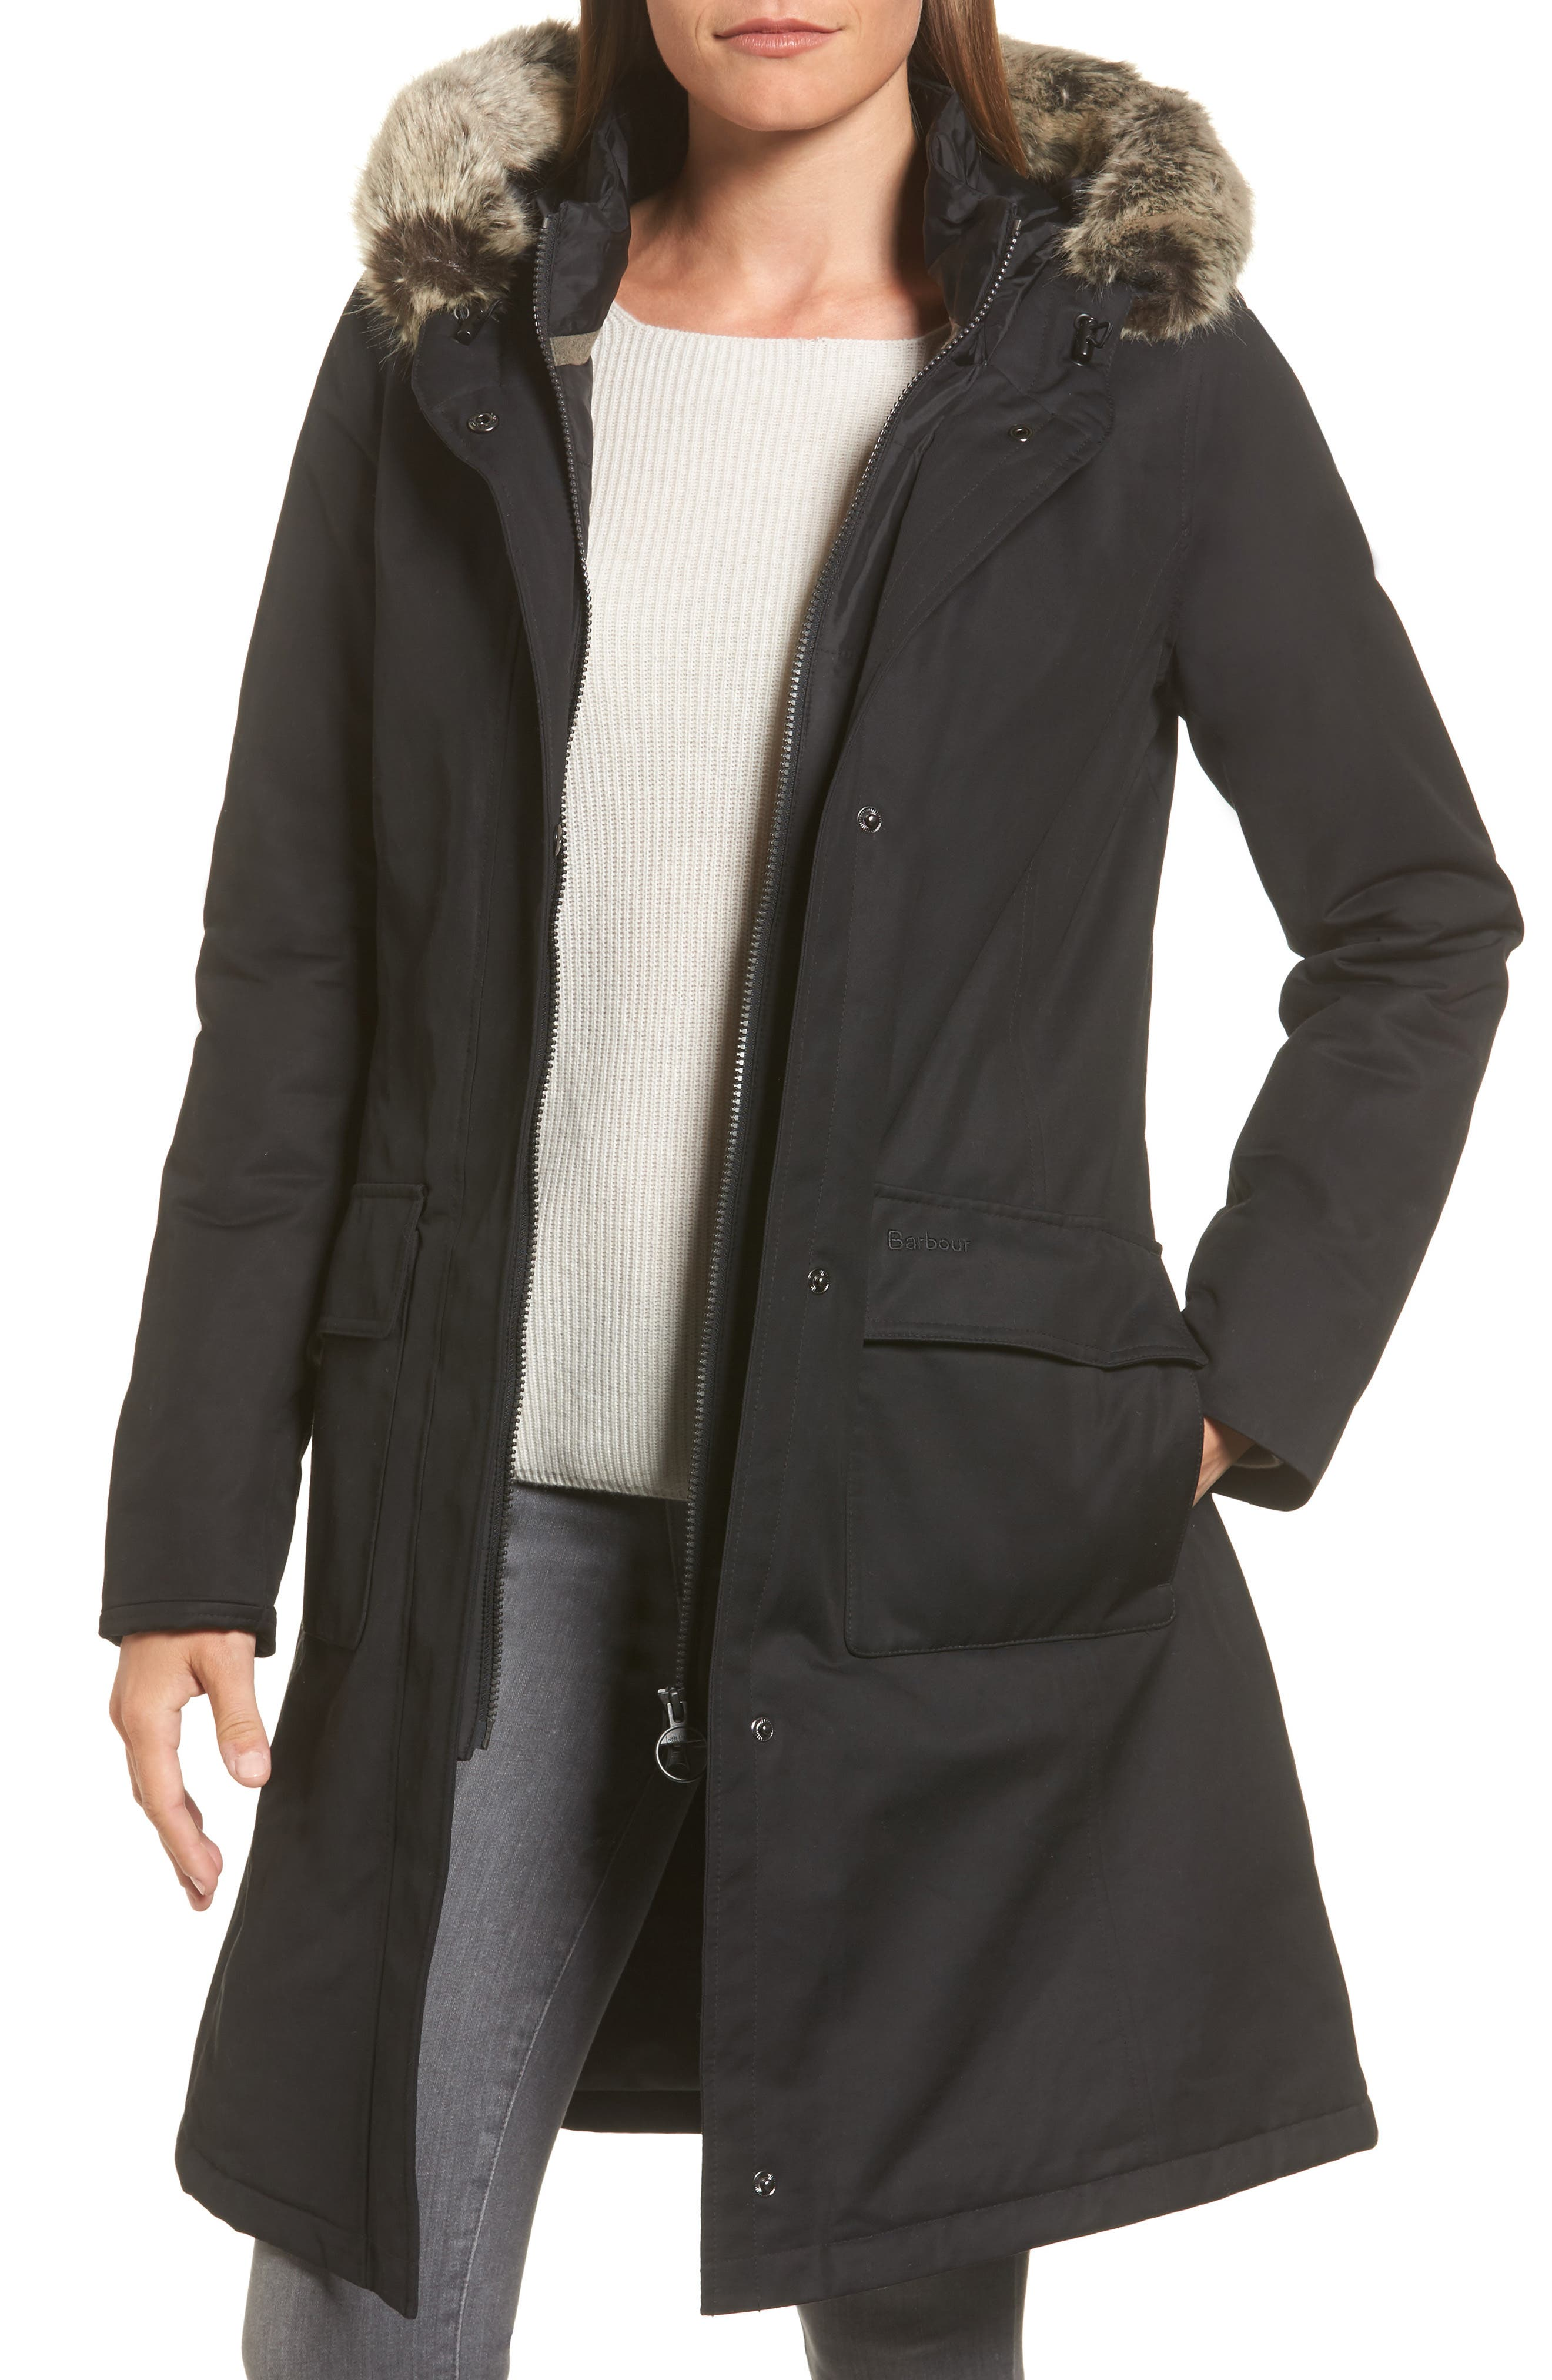 Linton Hooded Waterproof Jacket with Faux Fur Trim,                             Main thumbnail 1, color,                             001